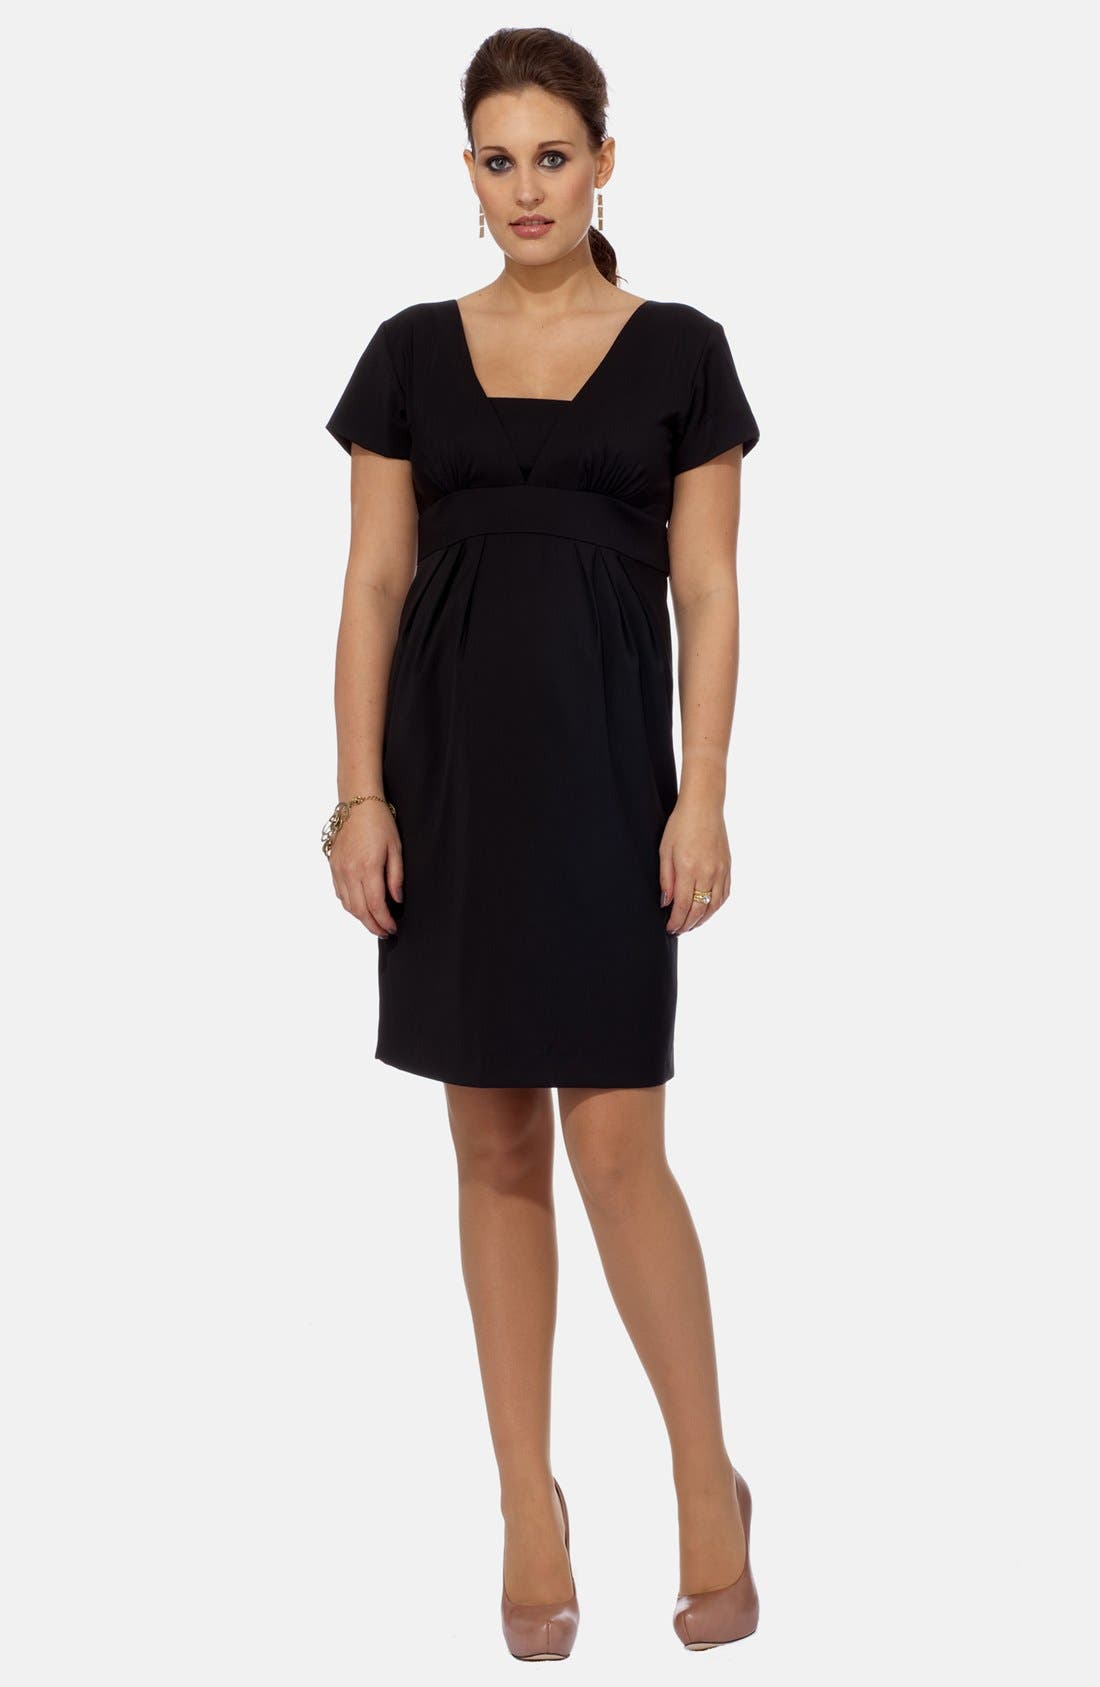 EVA ALEXANDER London Tailored Maternity Dress, Main, color, 001